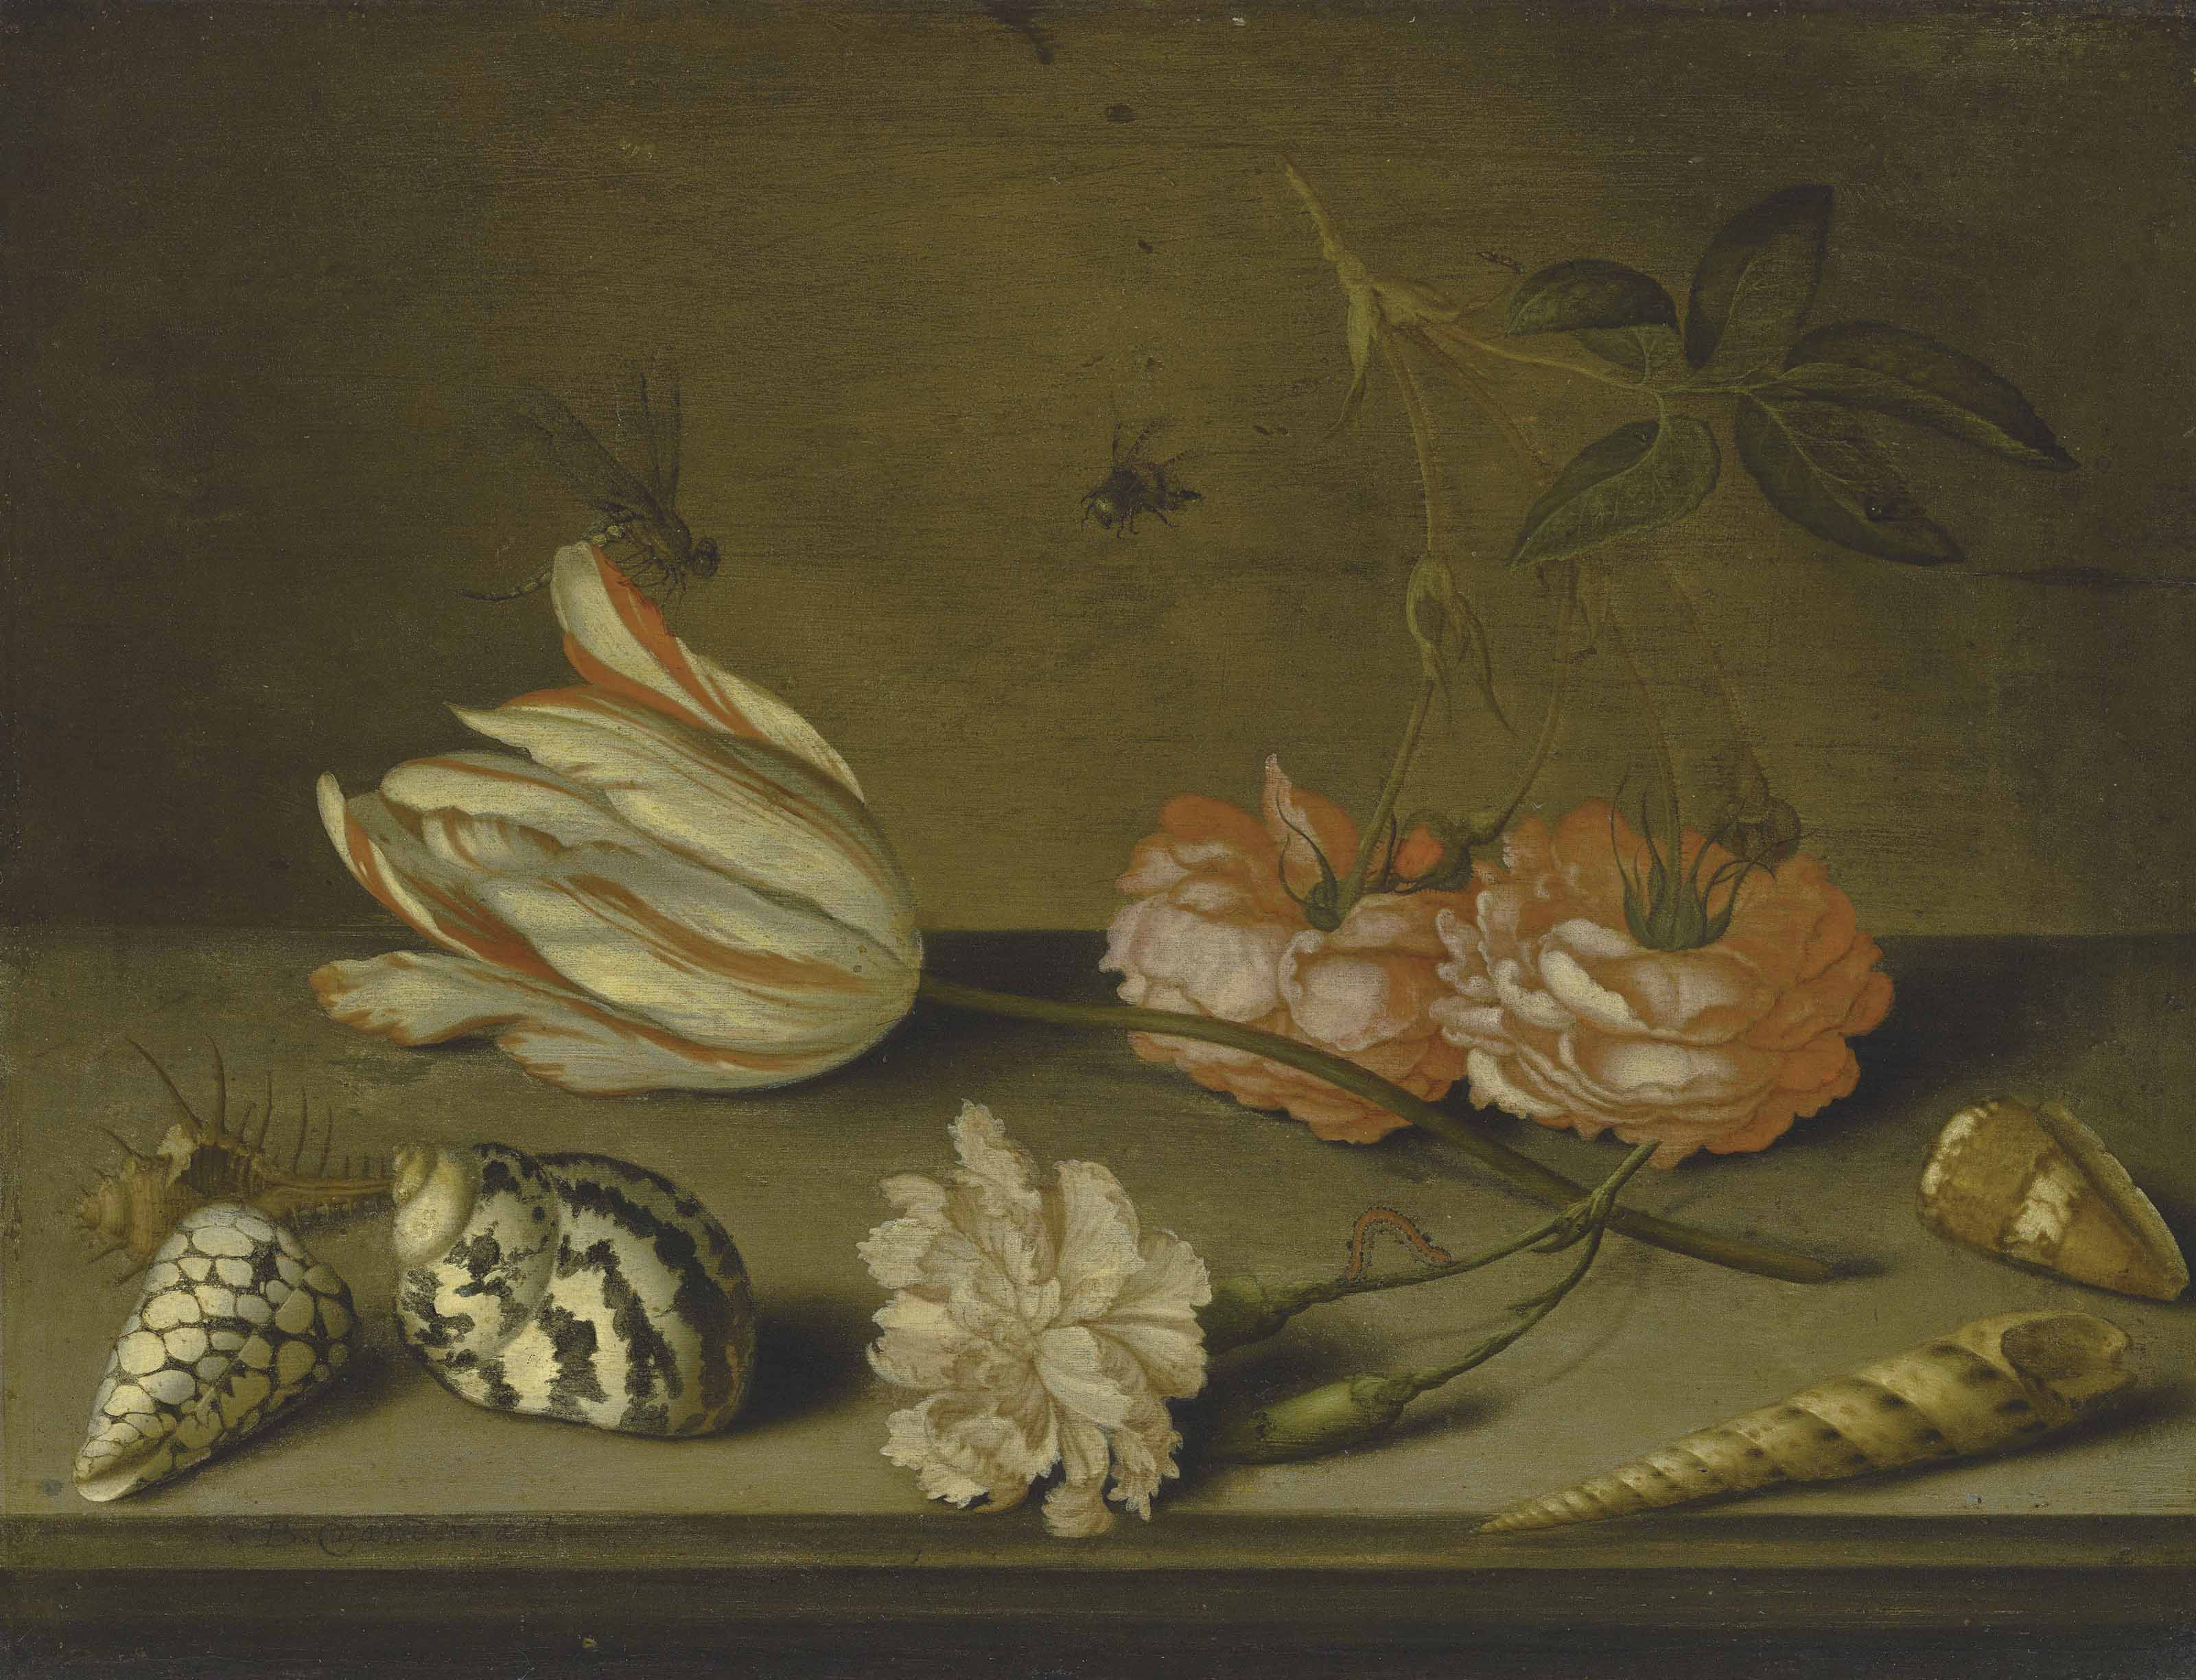 A Semper Augustus tulip, a carnation and roses, with shells and insects, on a ledge